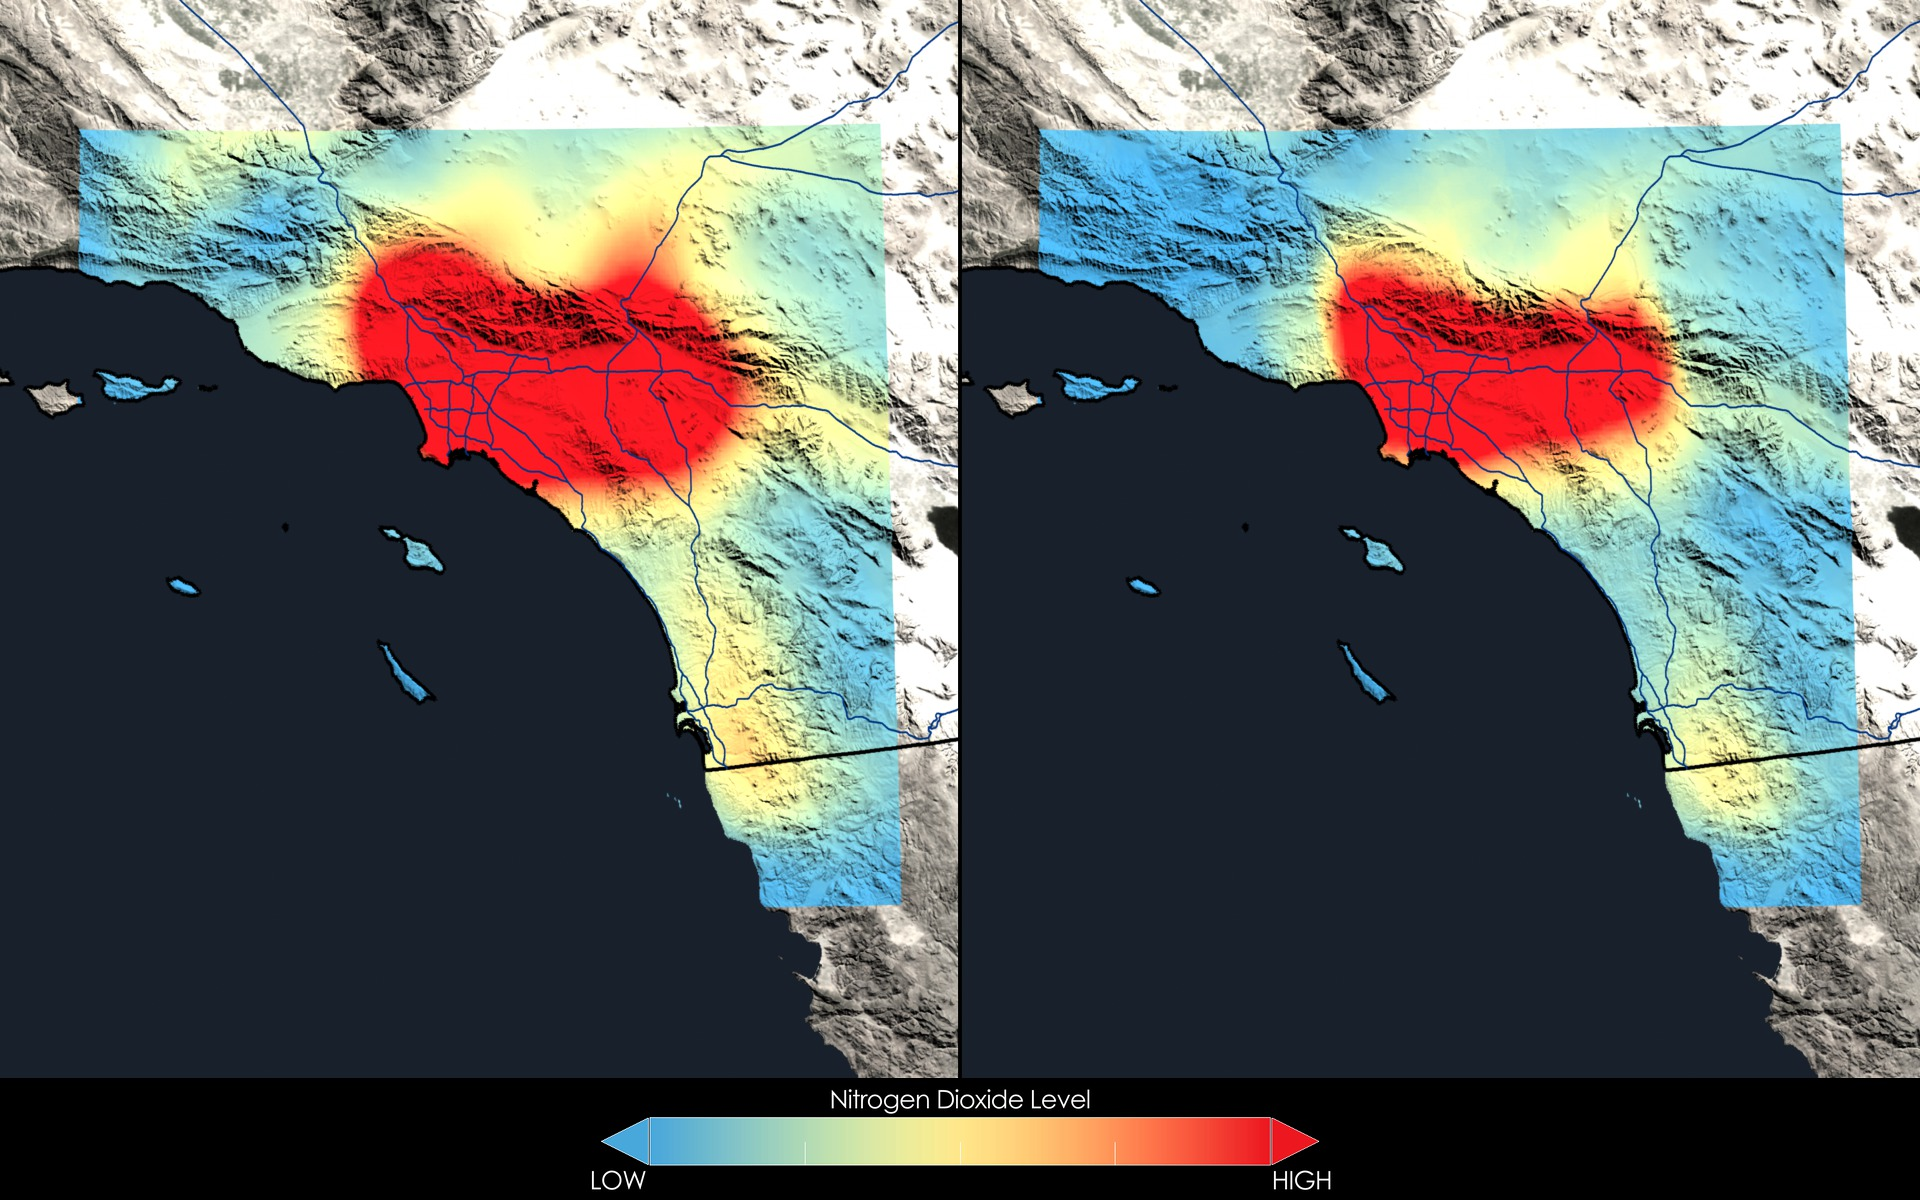 Gms Nasa Images Highlight U S Air Quality Improvement Release